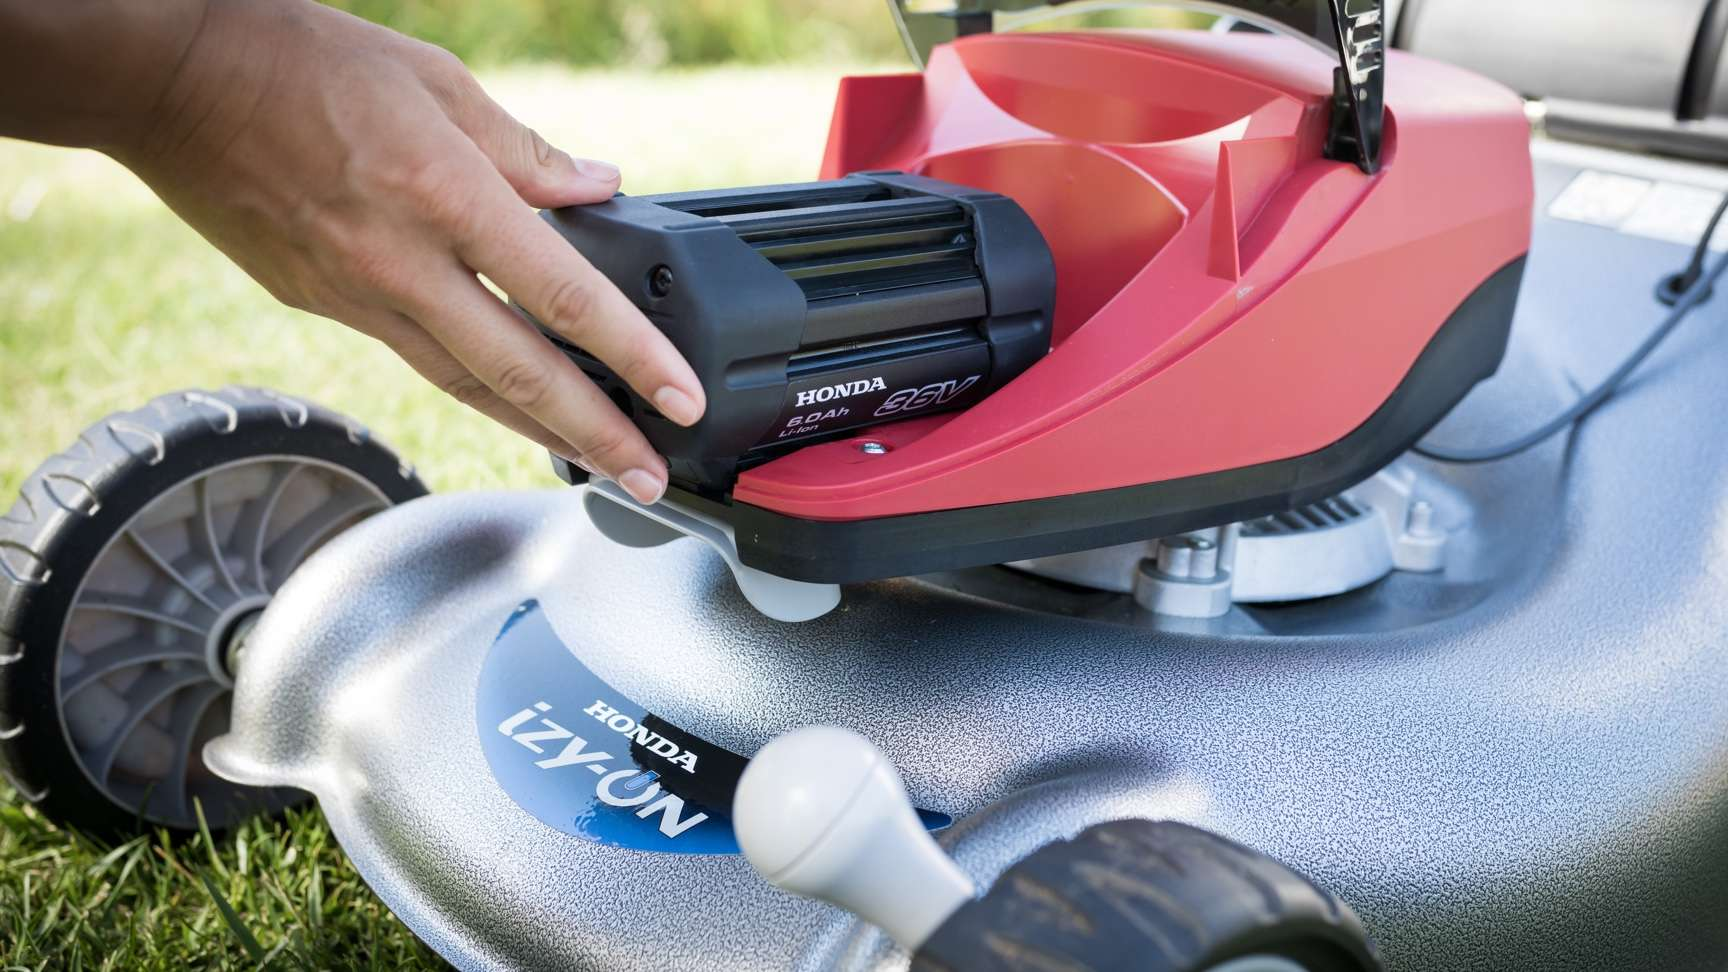 Model hands changing battery of Honda izy-ON mower.